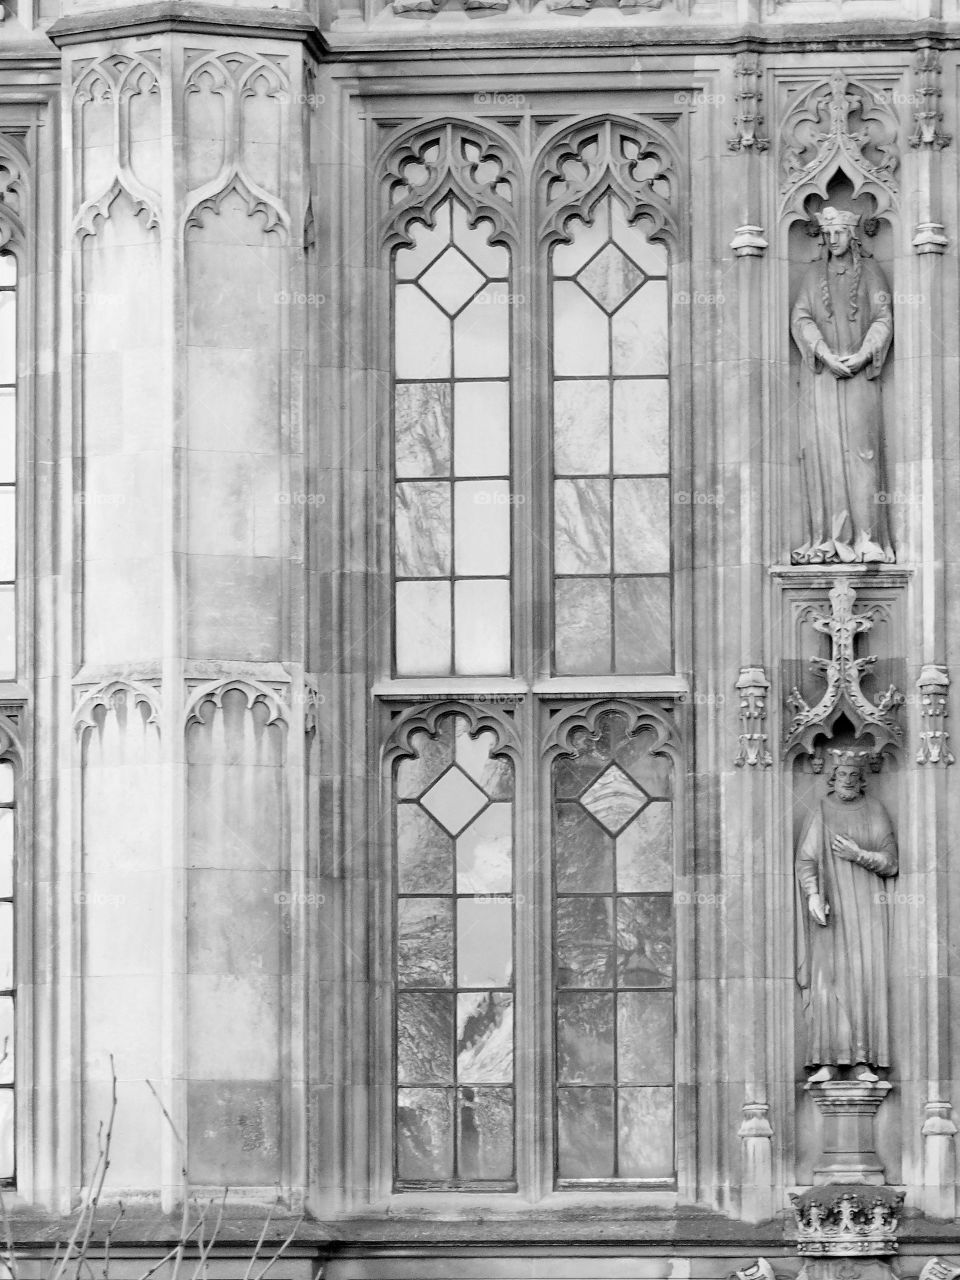 Ornate facade and Windows. Black and white photo taken in London.